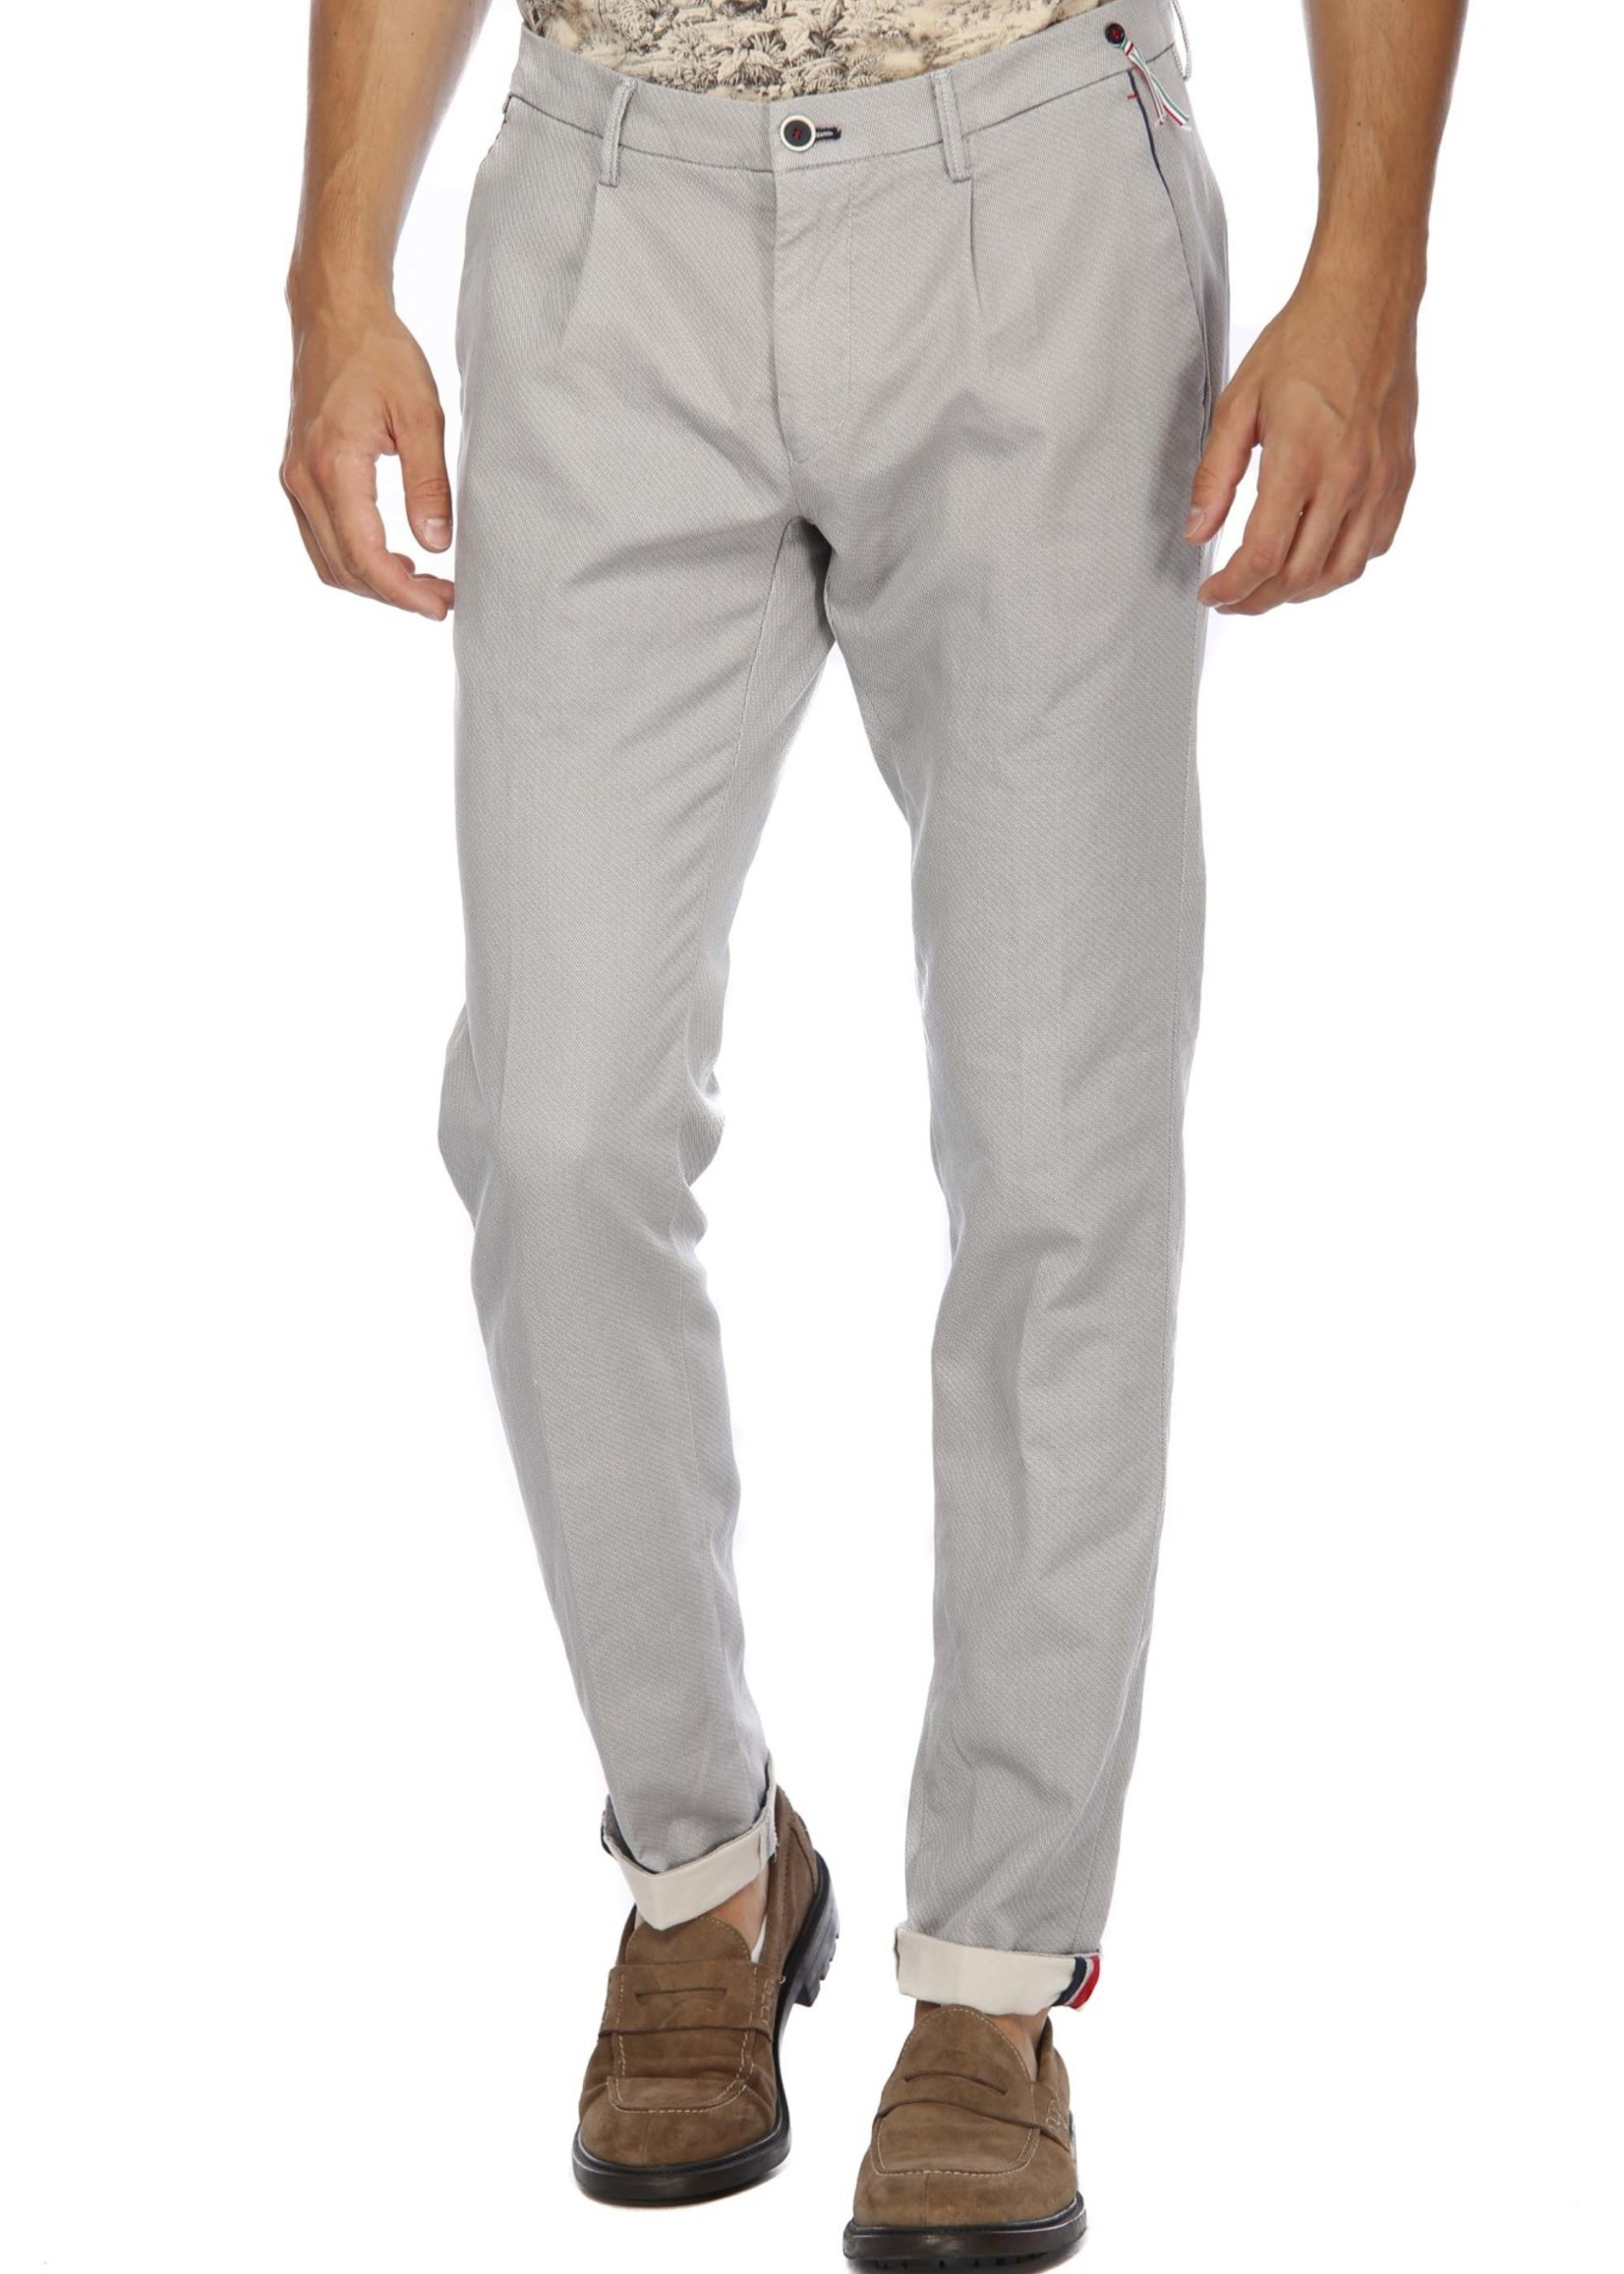 Mason's Chino pants with one pleat Toscana Golf with printed jersey | Grey | Mason's